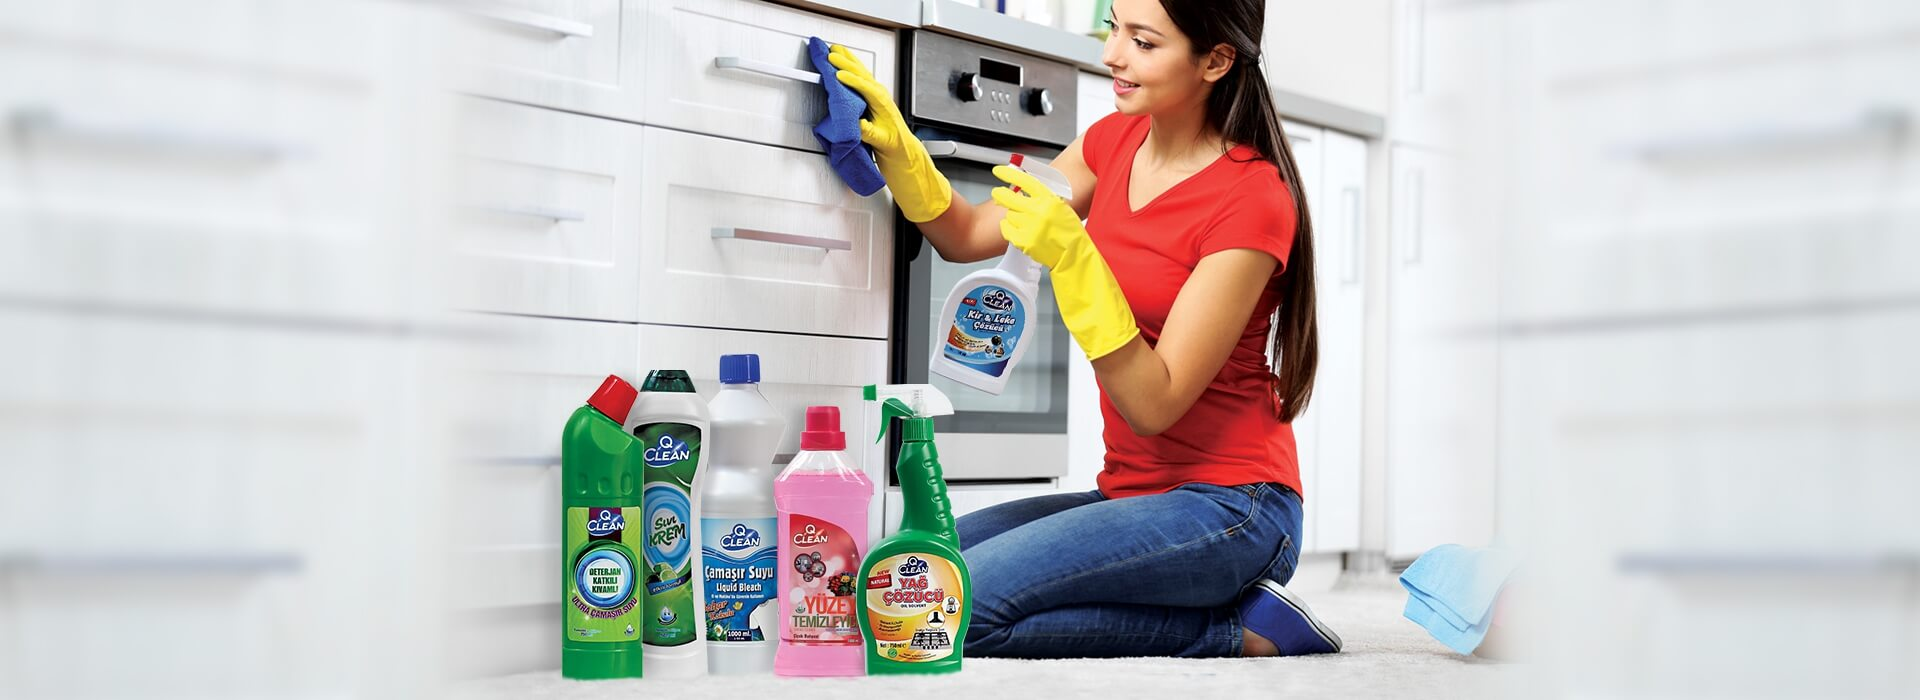 Cleaning - Hyqiene